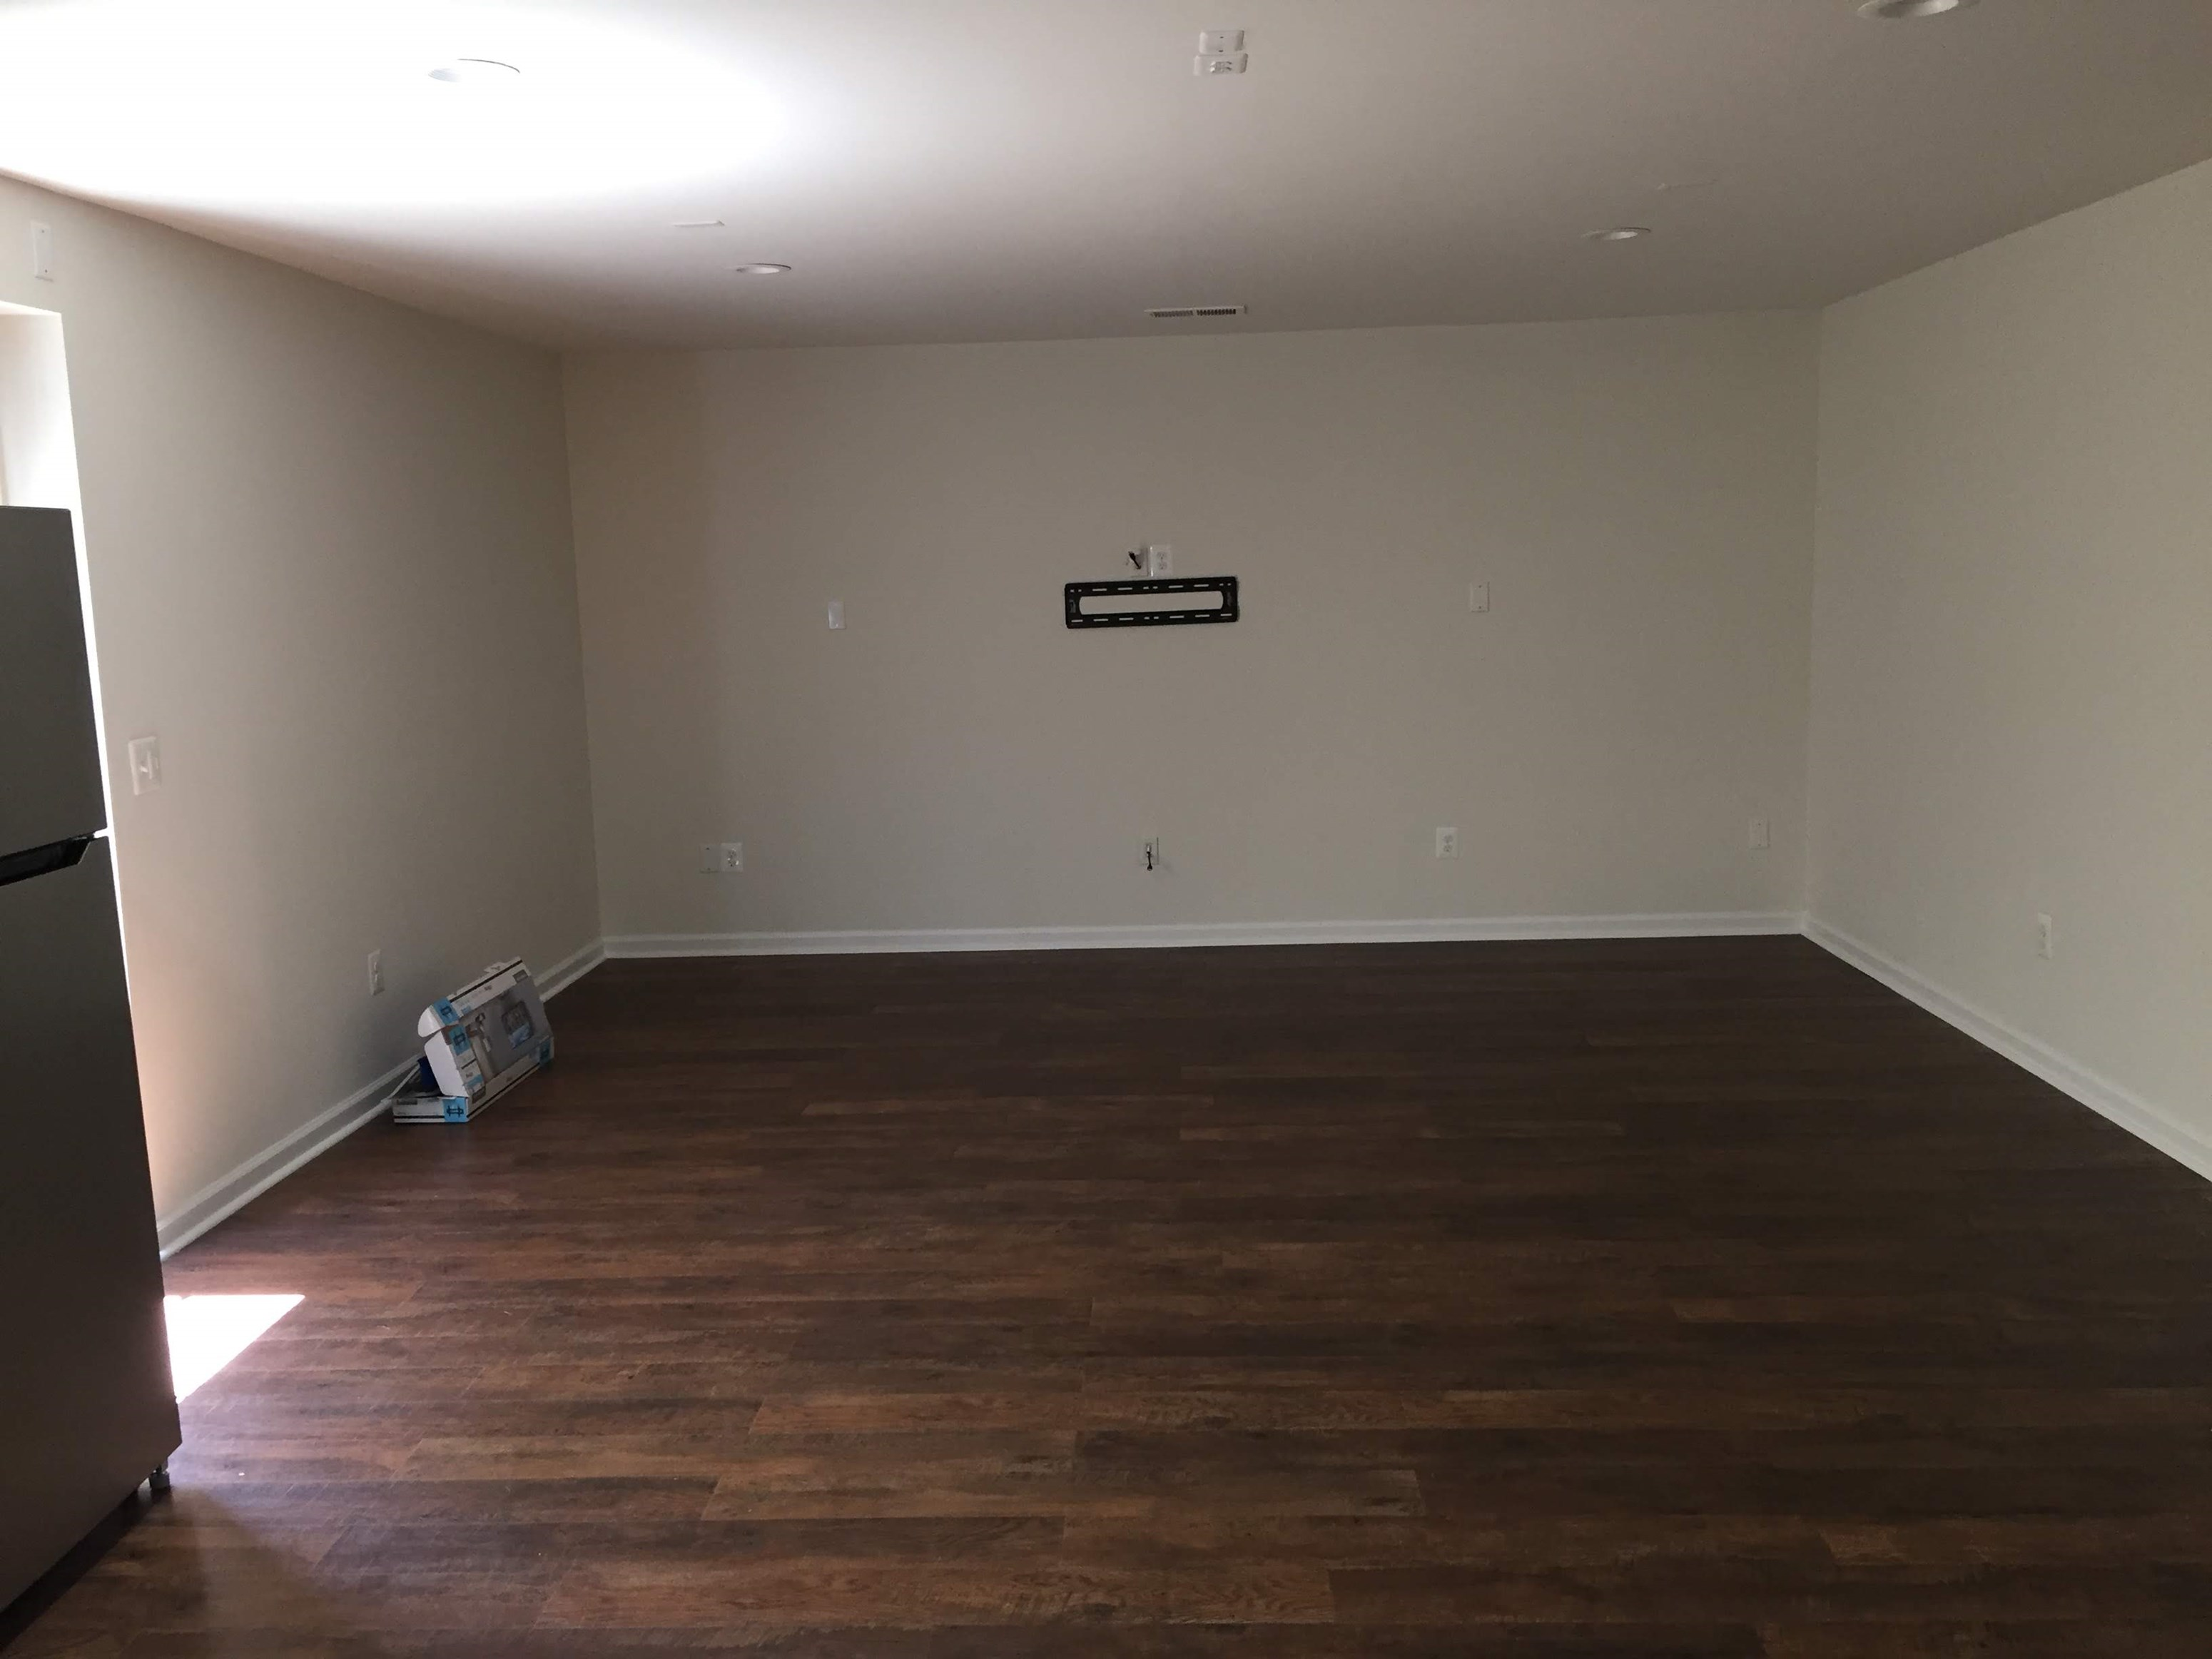 Basement Apartment for Rent in Chantilly, VA | Sulekha Rentals